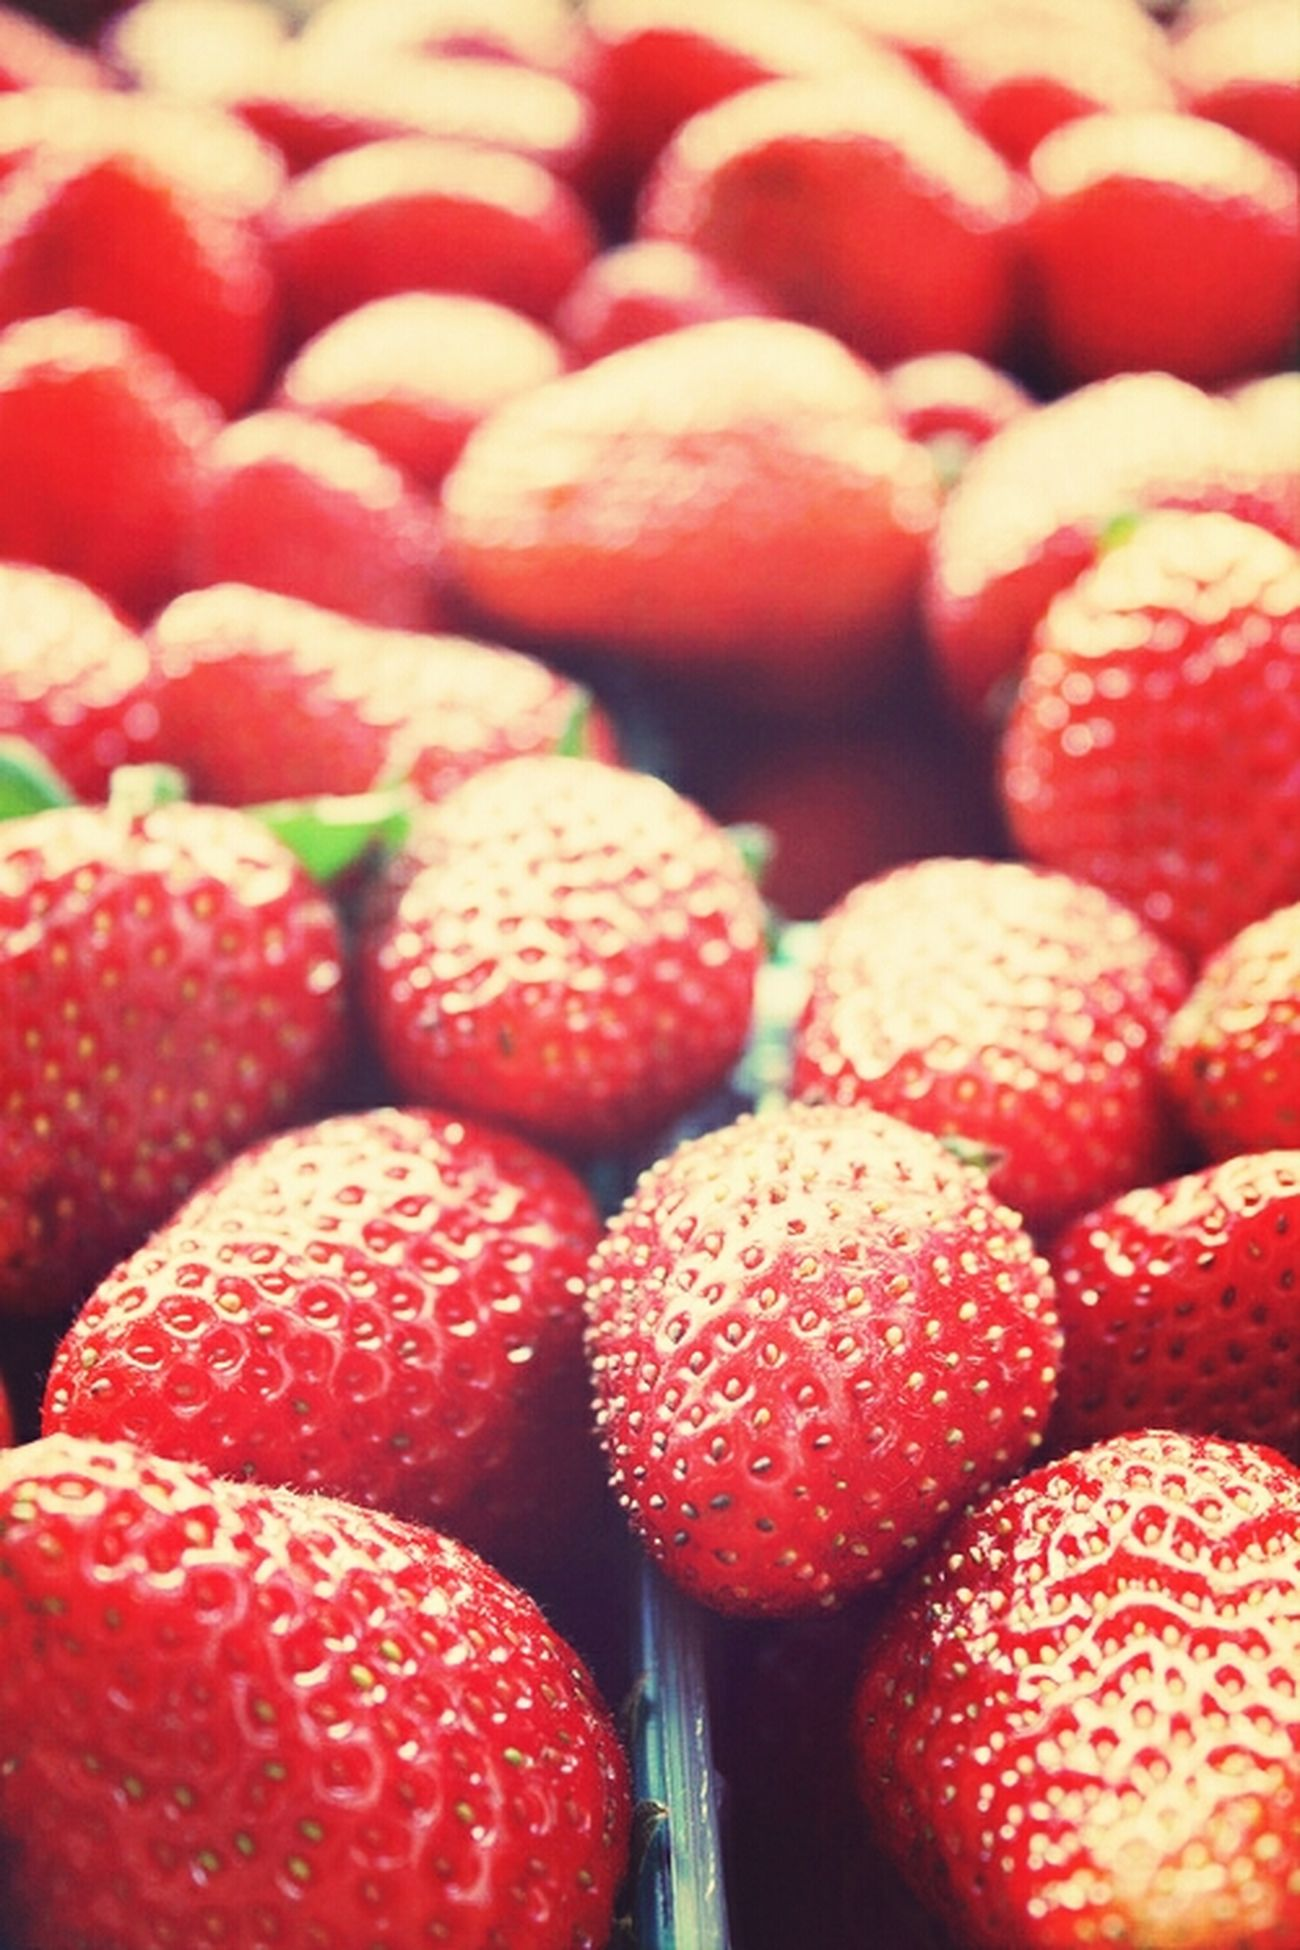 Strawberries I Want It♡ Taking Photos Boring At Home